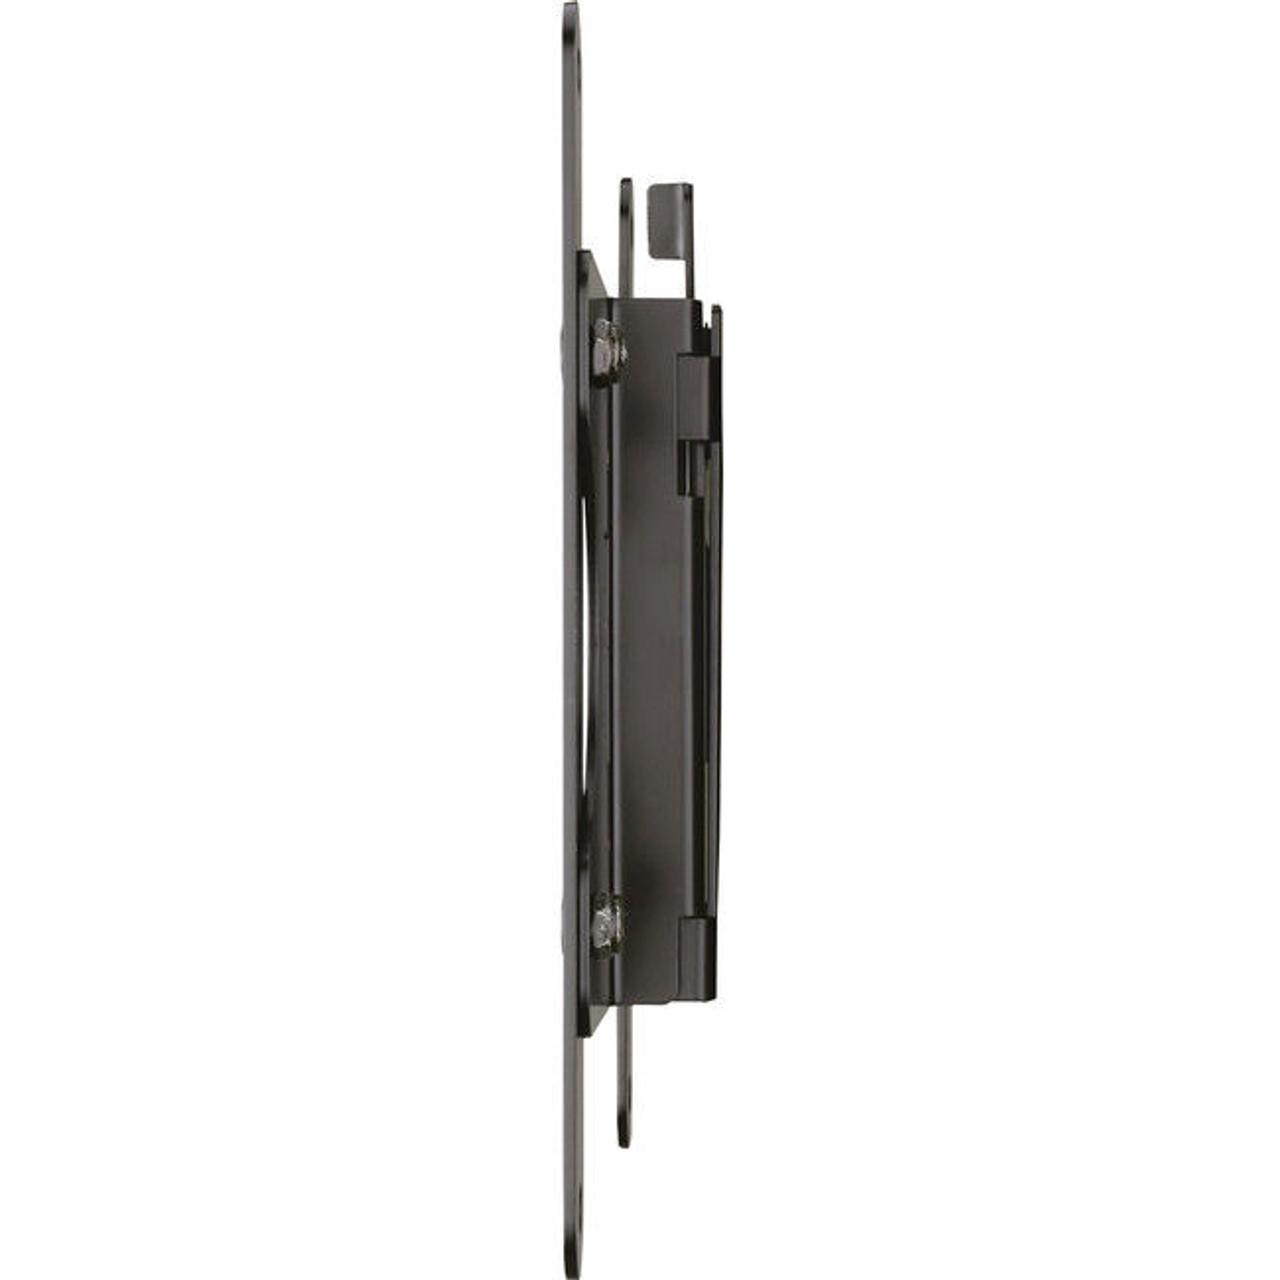 "Sanus QST25-B2 Small Tilting Wall Mount for TVs up to 39"" and 35lb (16kg)"